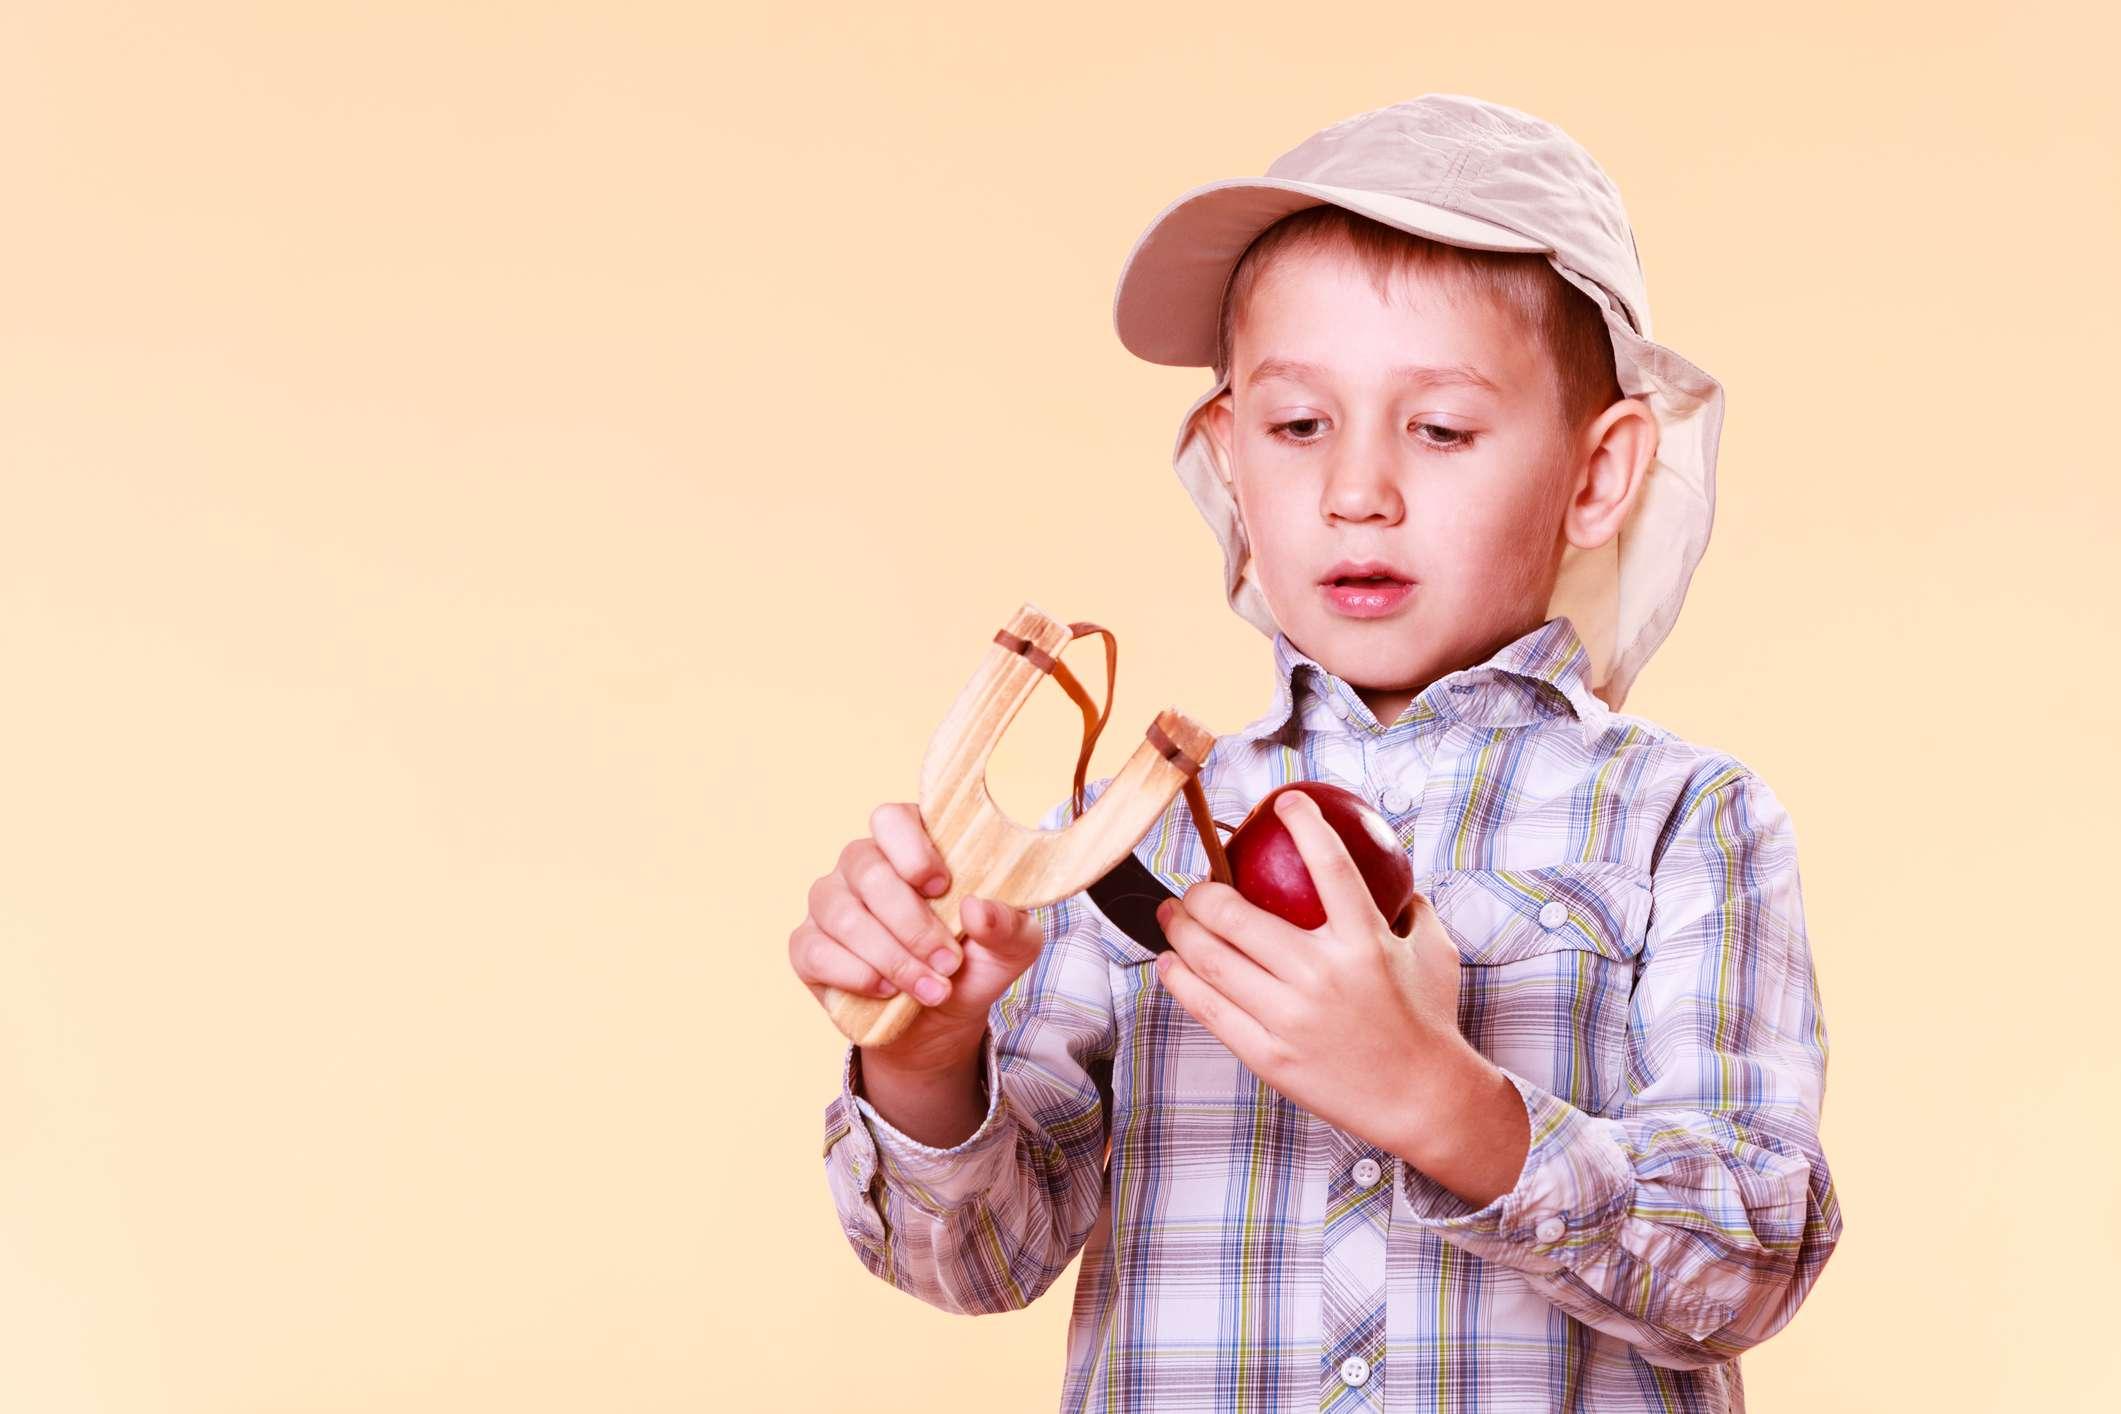 child putting an apple into a sling shot